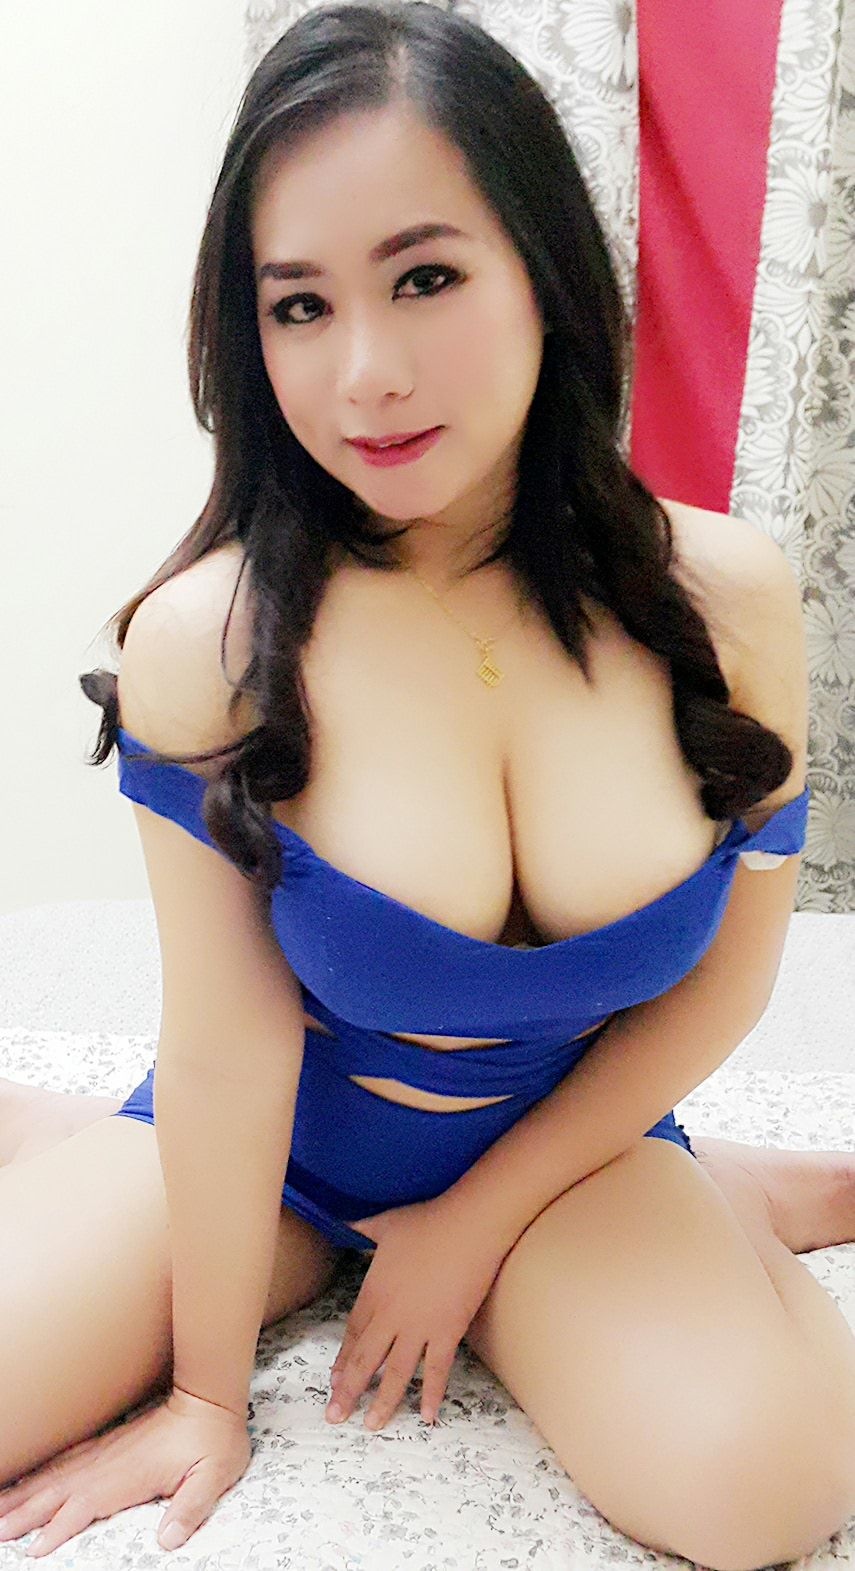 big boobs sexy girl new come, thai escort in muscat